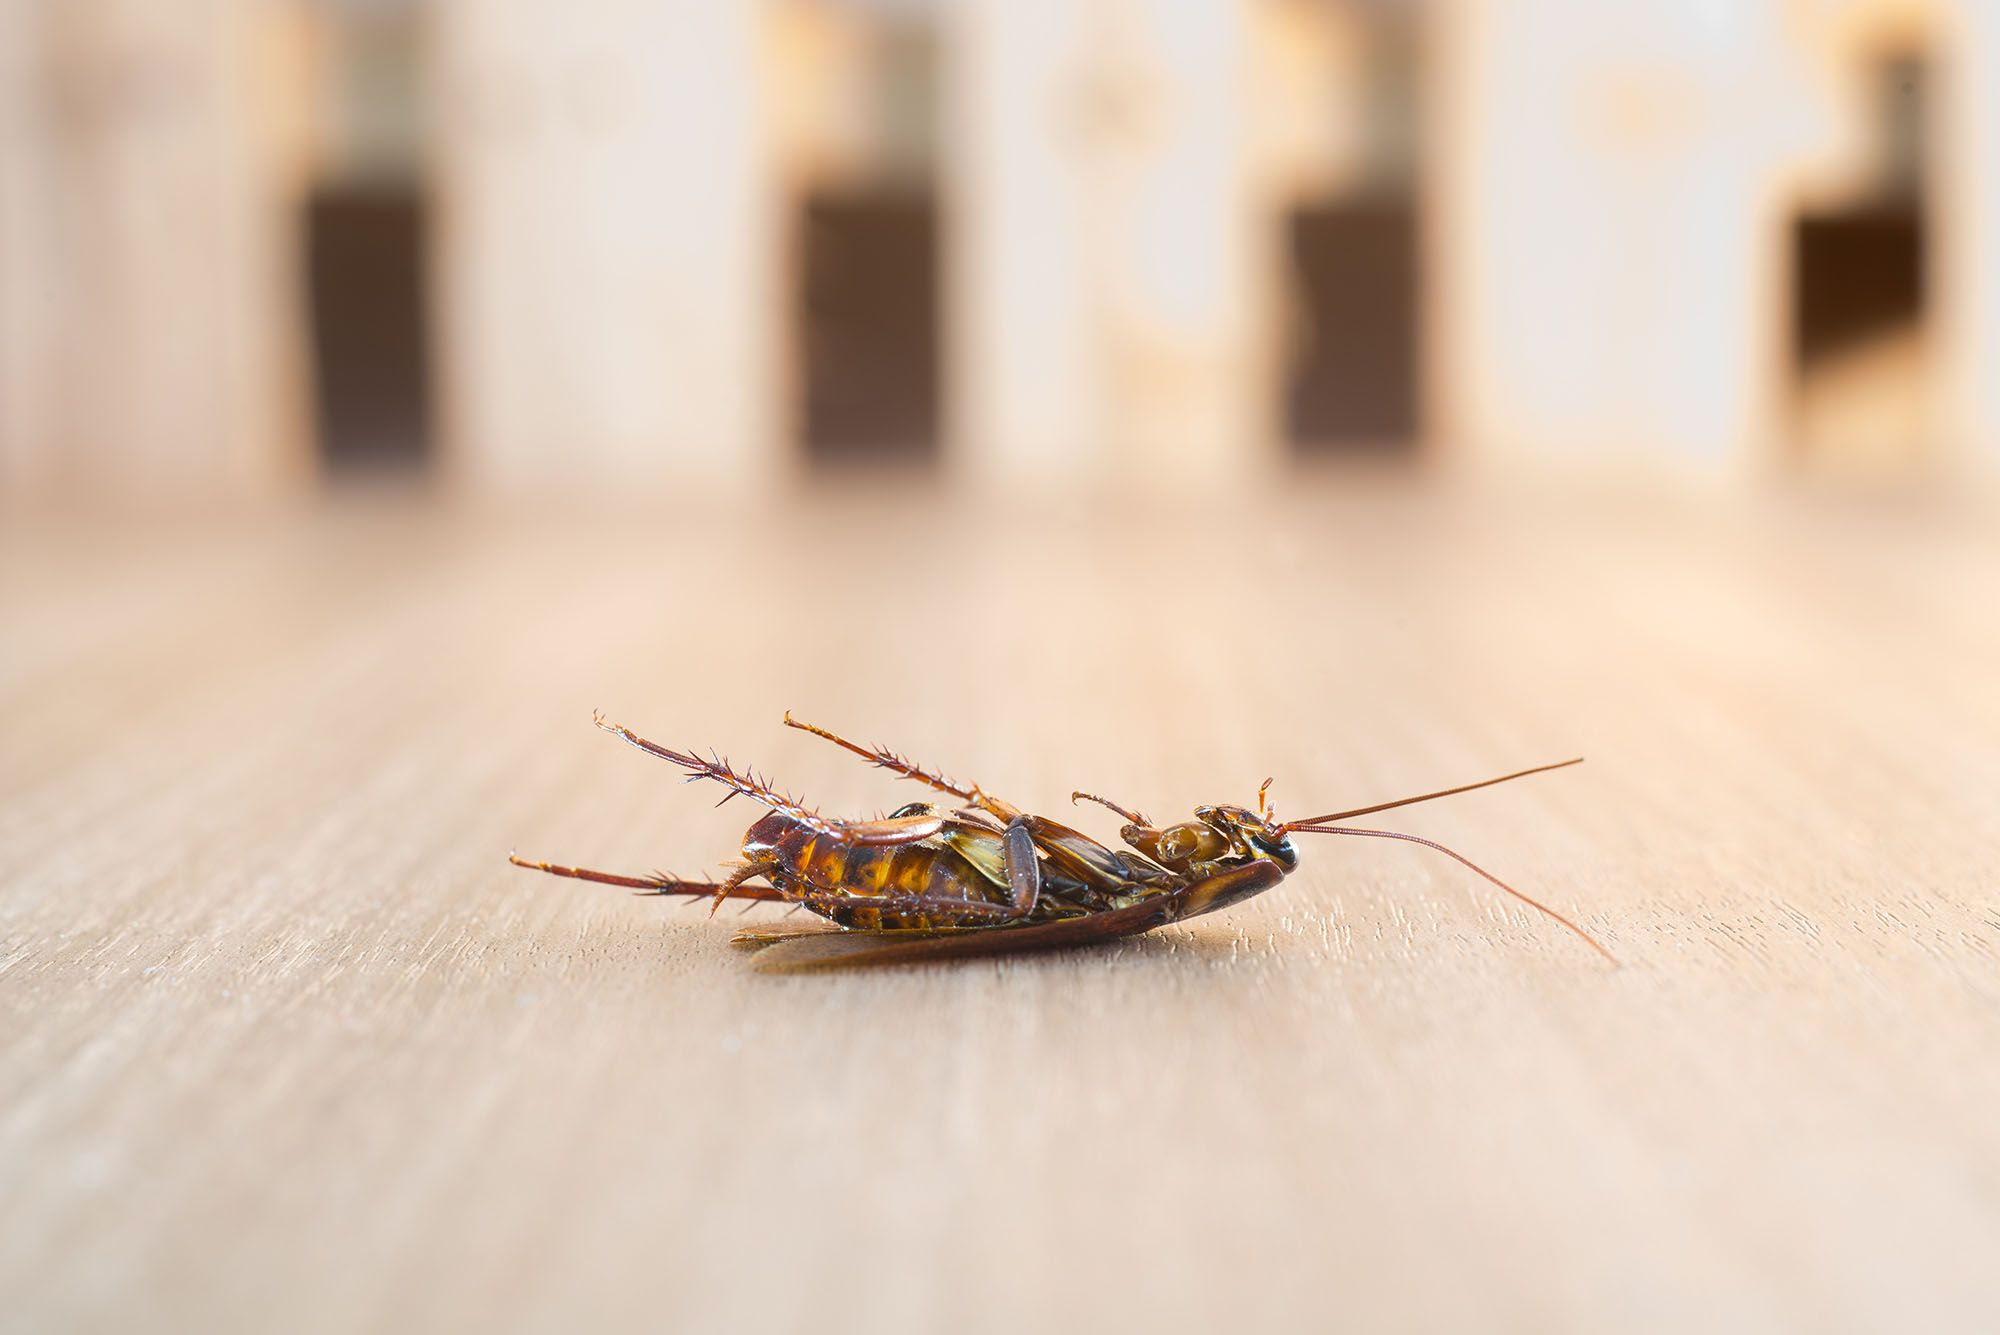 8 natural ways to get rid of cockroaches Cockroaches